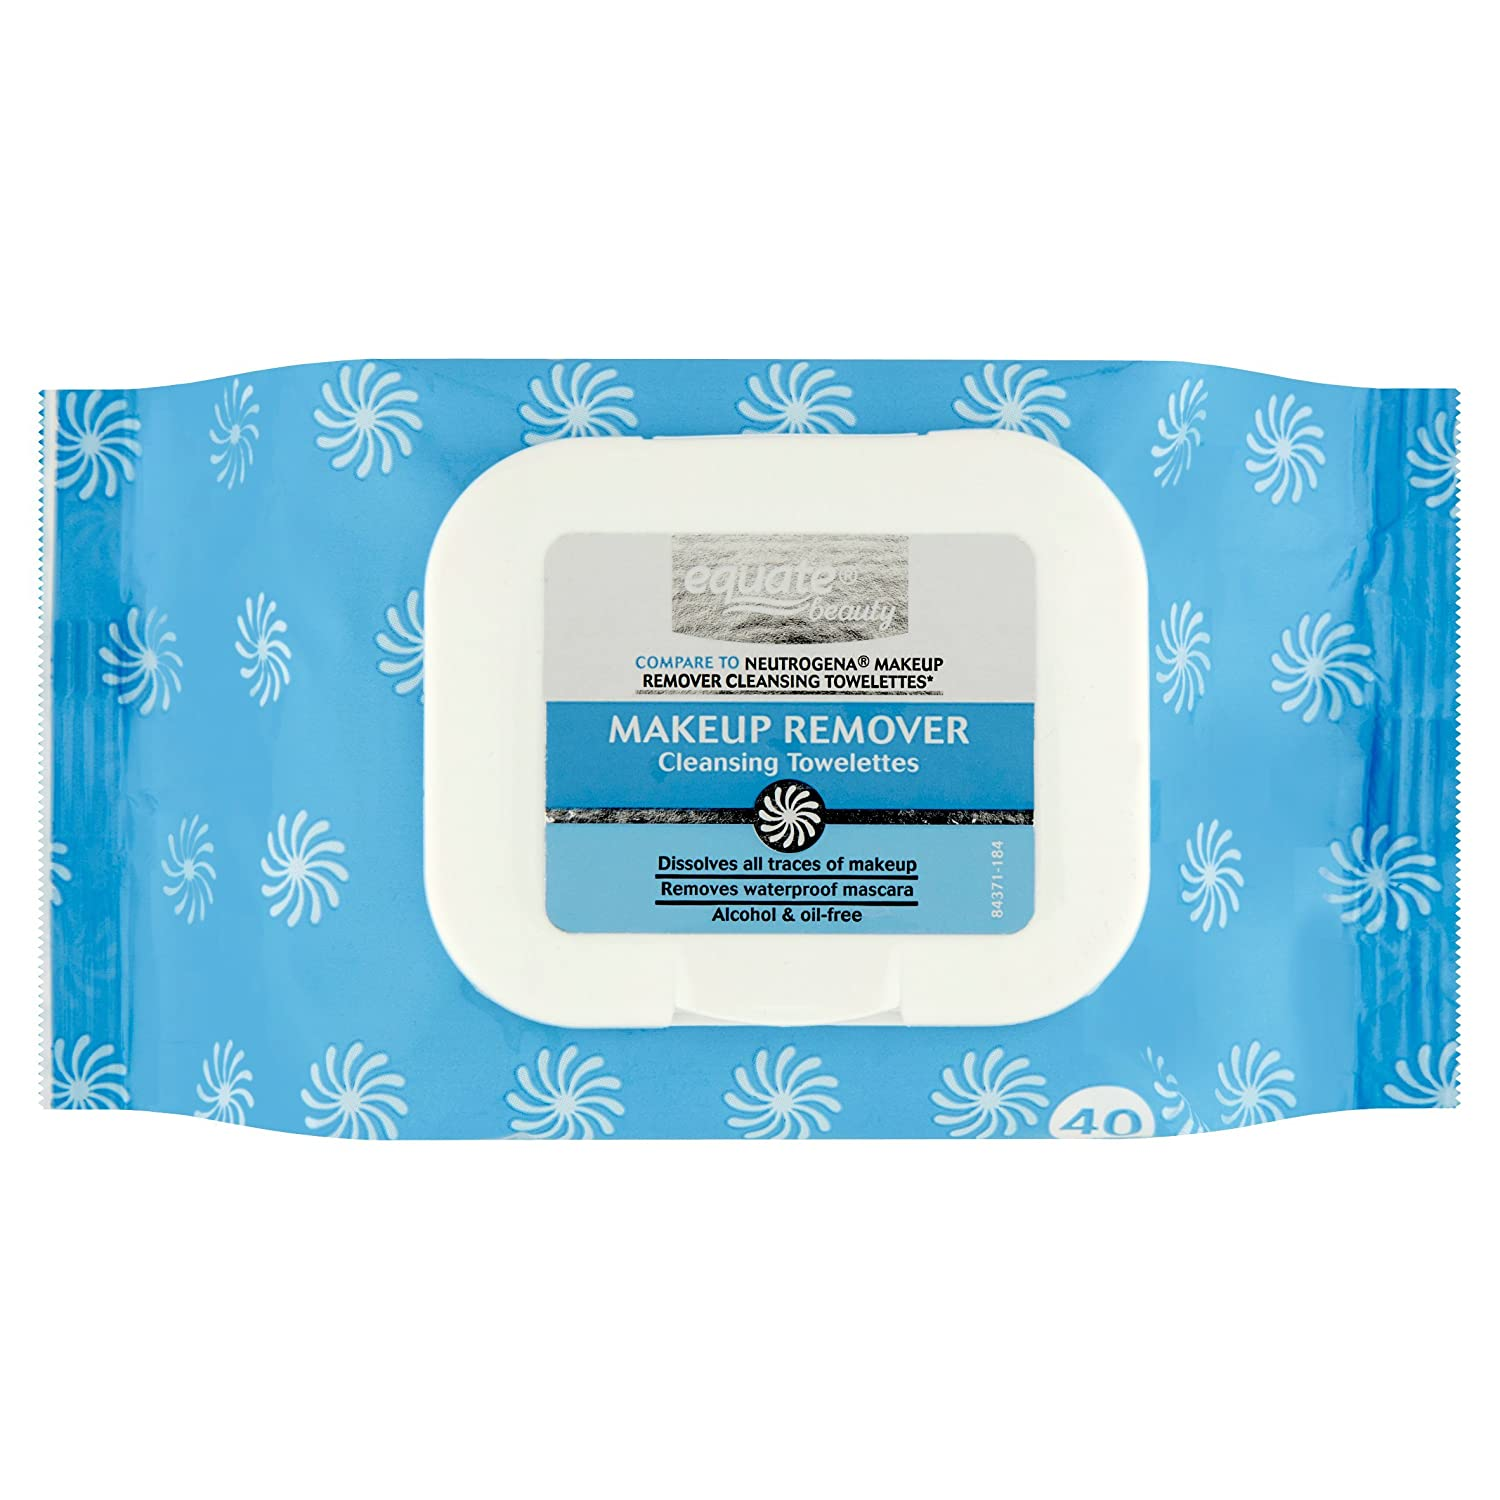 Equate Makeup Remover Cleansing Towelettes 80 Count